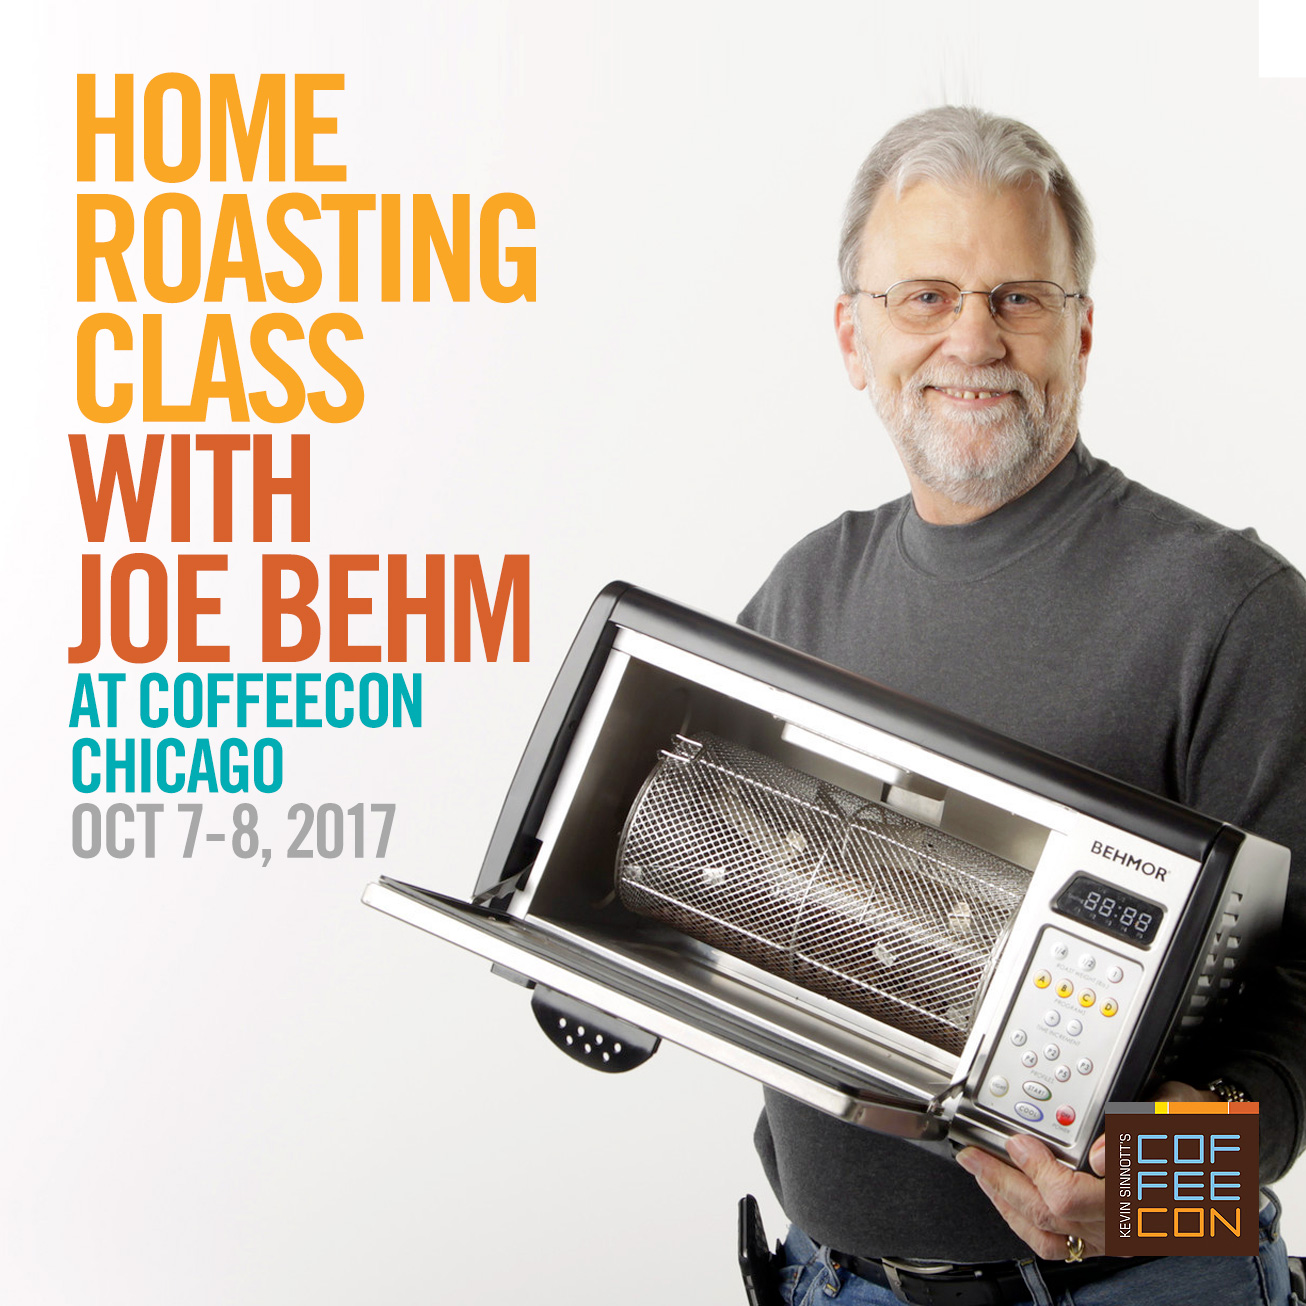 Home Roasting with Joe Behm at CoffeeConChicago 2017